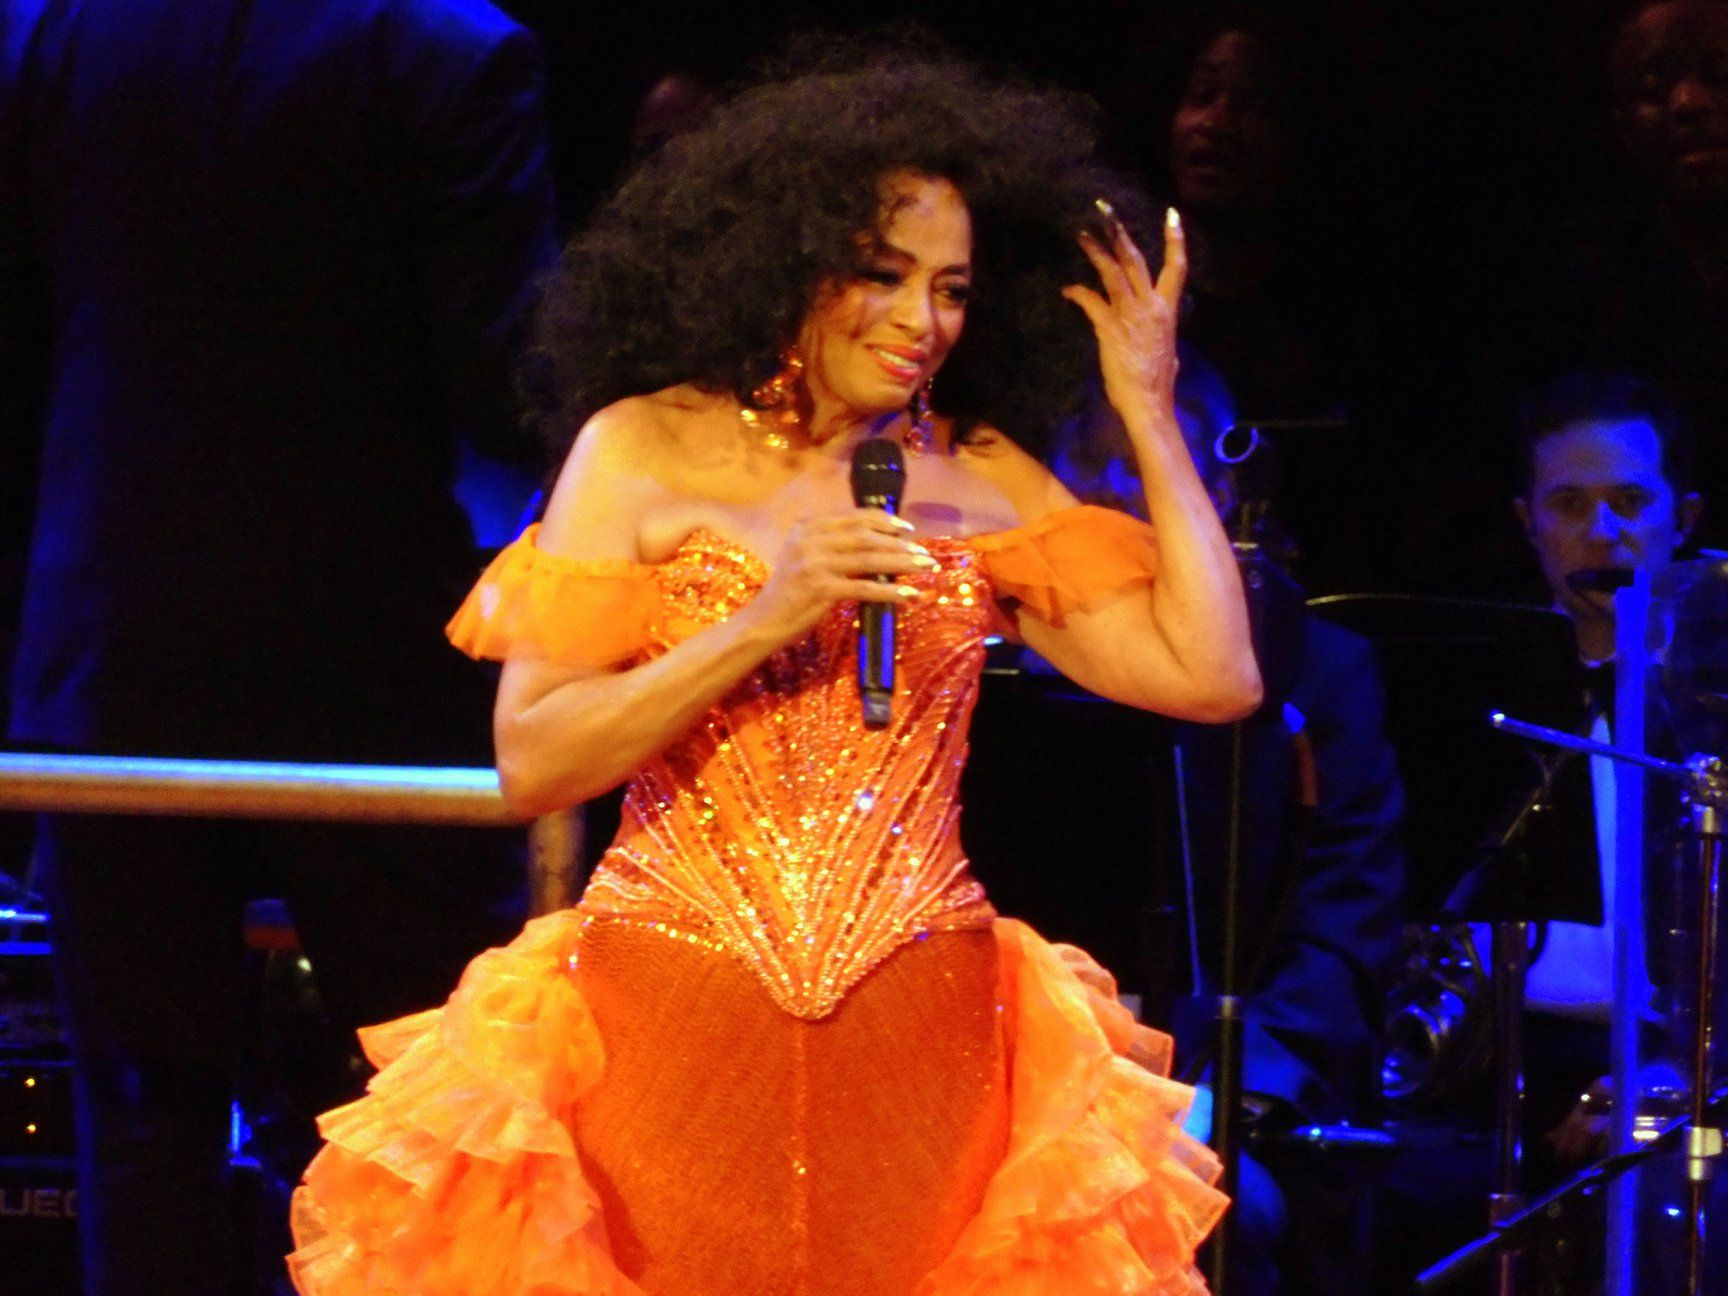 diana ross at kennedy center for the performing arts during her music book 2020 tour in washington dc on friday january 1 in 2020 diana ross performance art her music pinterest